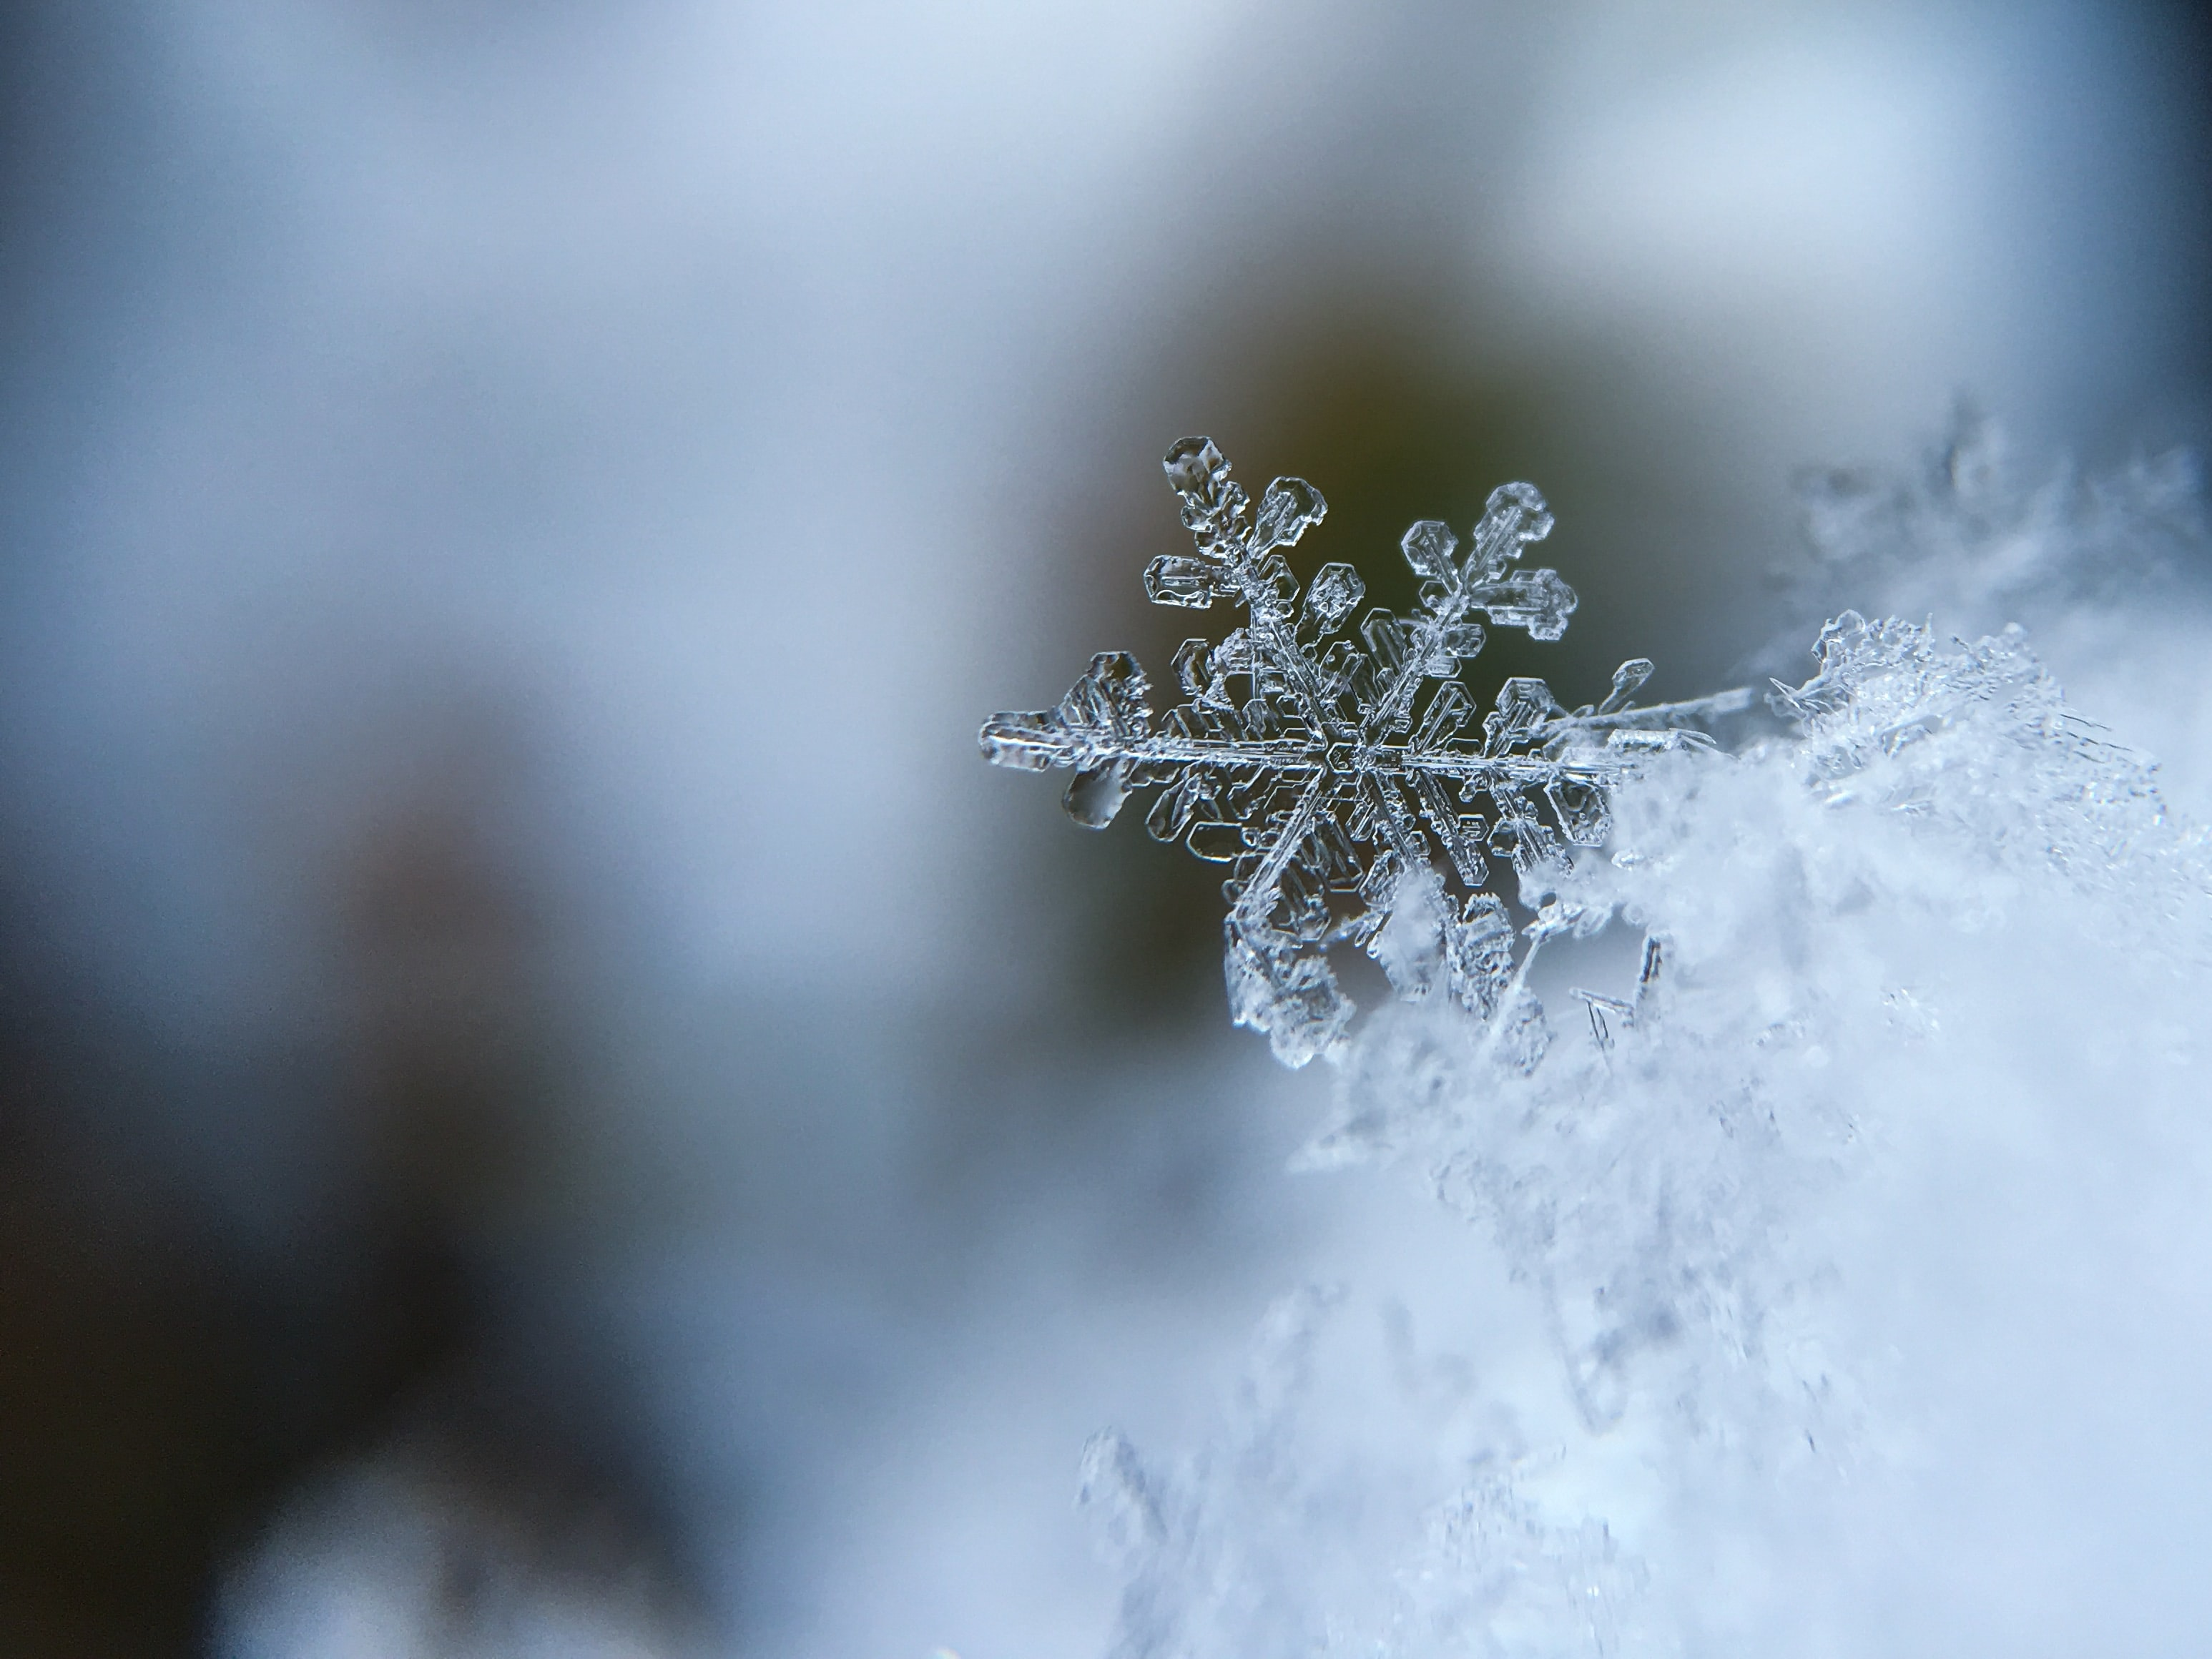 A macro shot of a ice crystal forming a snowflake